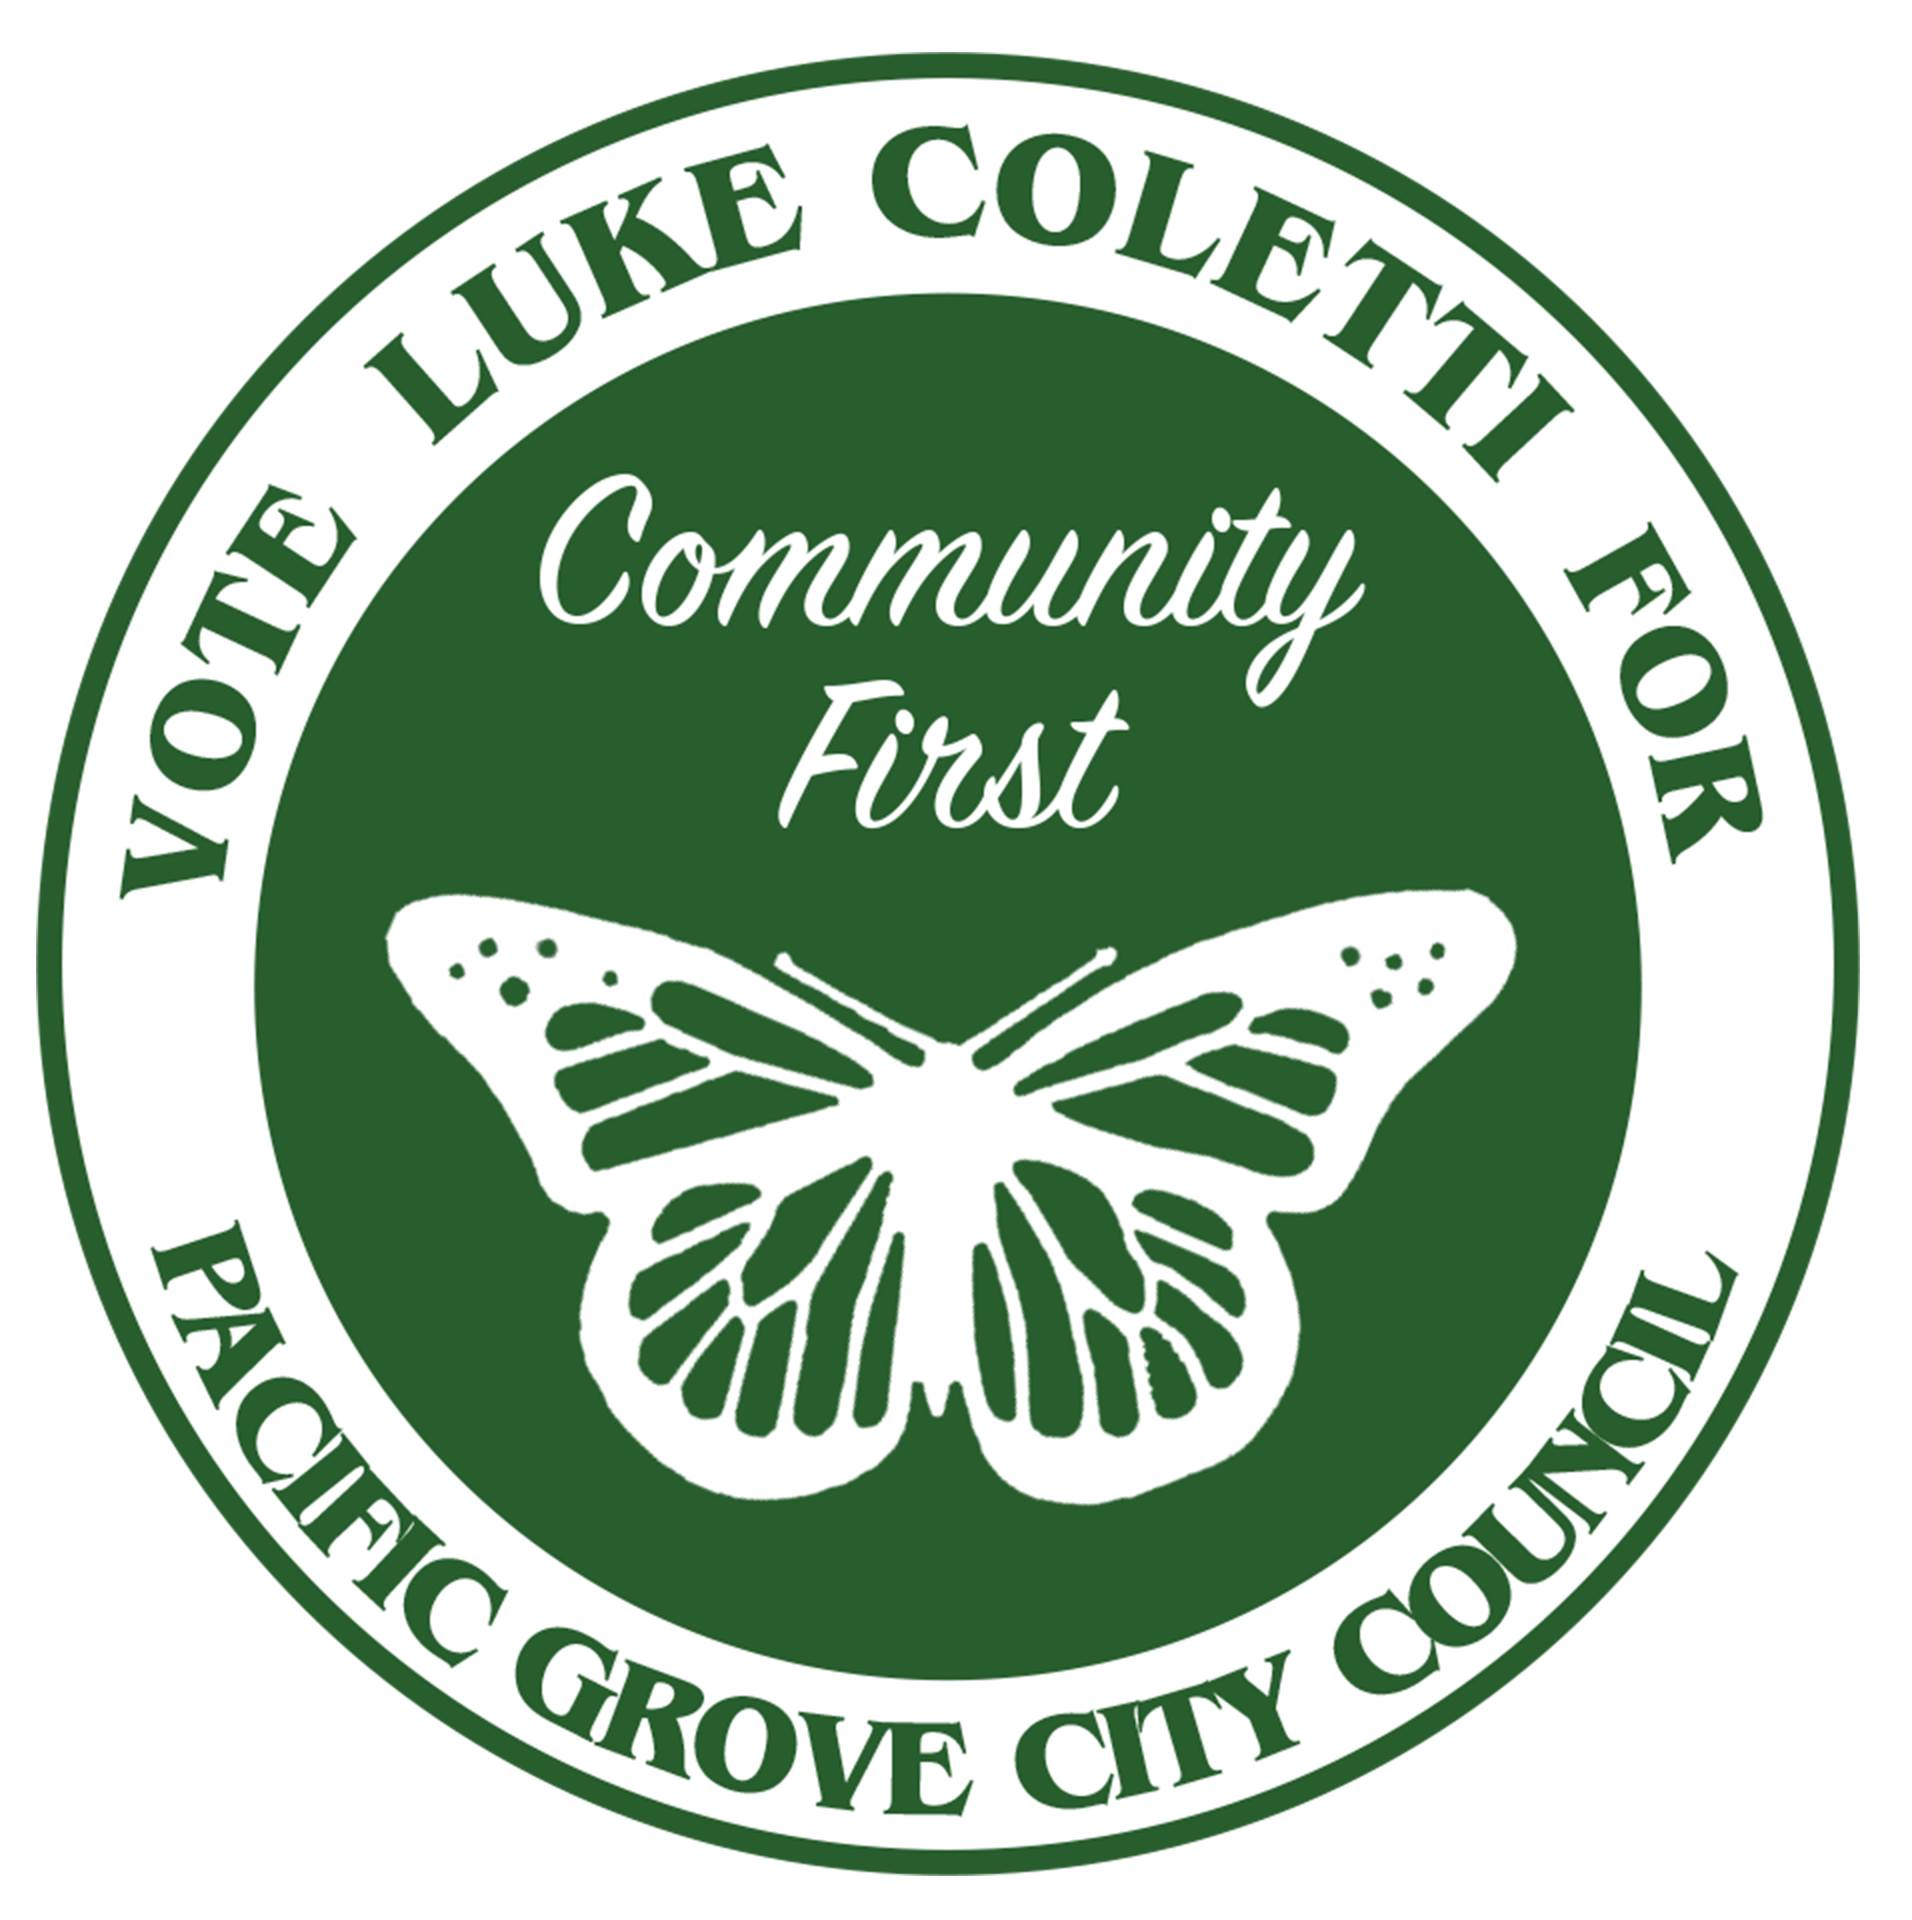 Luke Coletti for Pacific Grove City Council